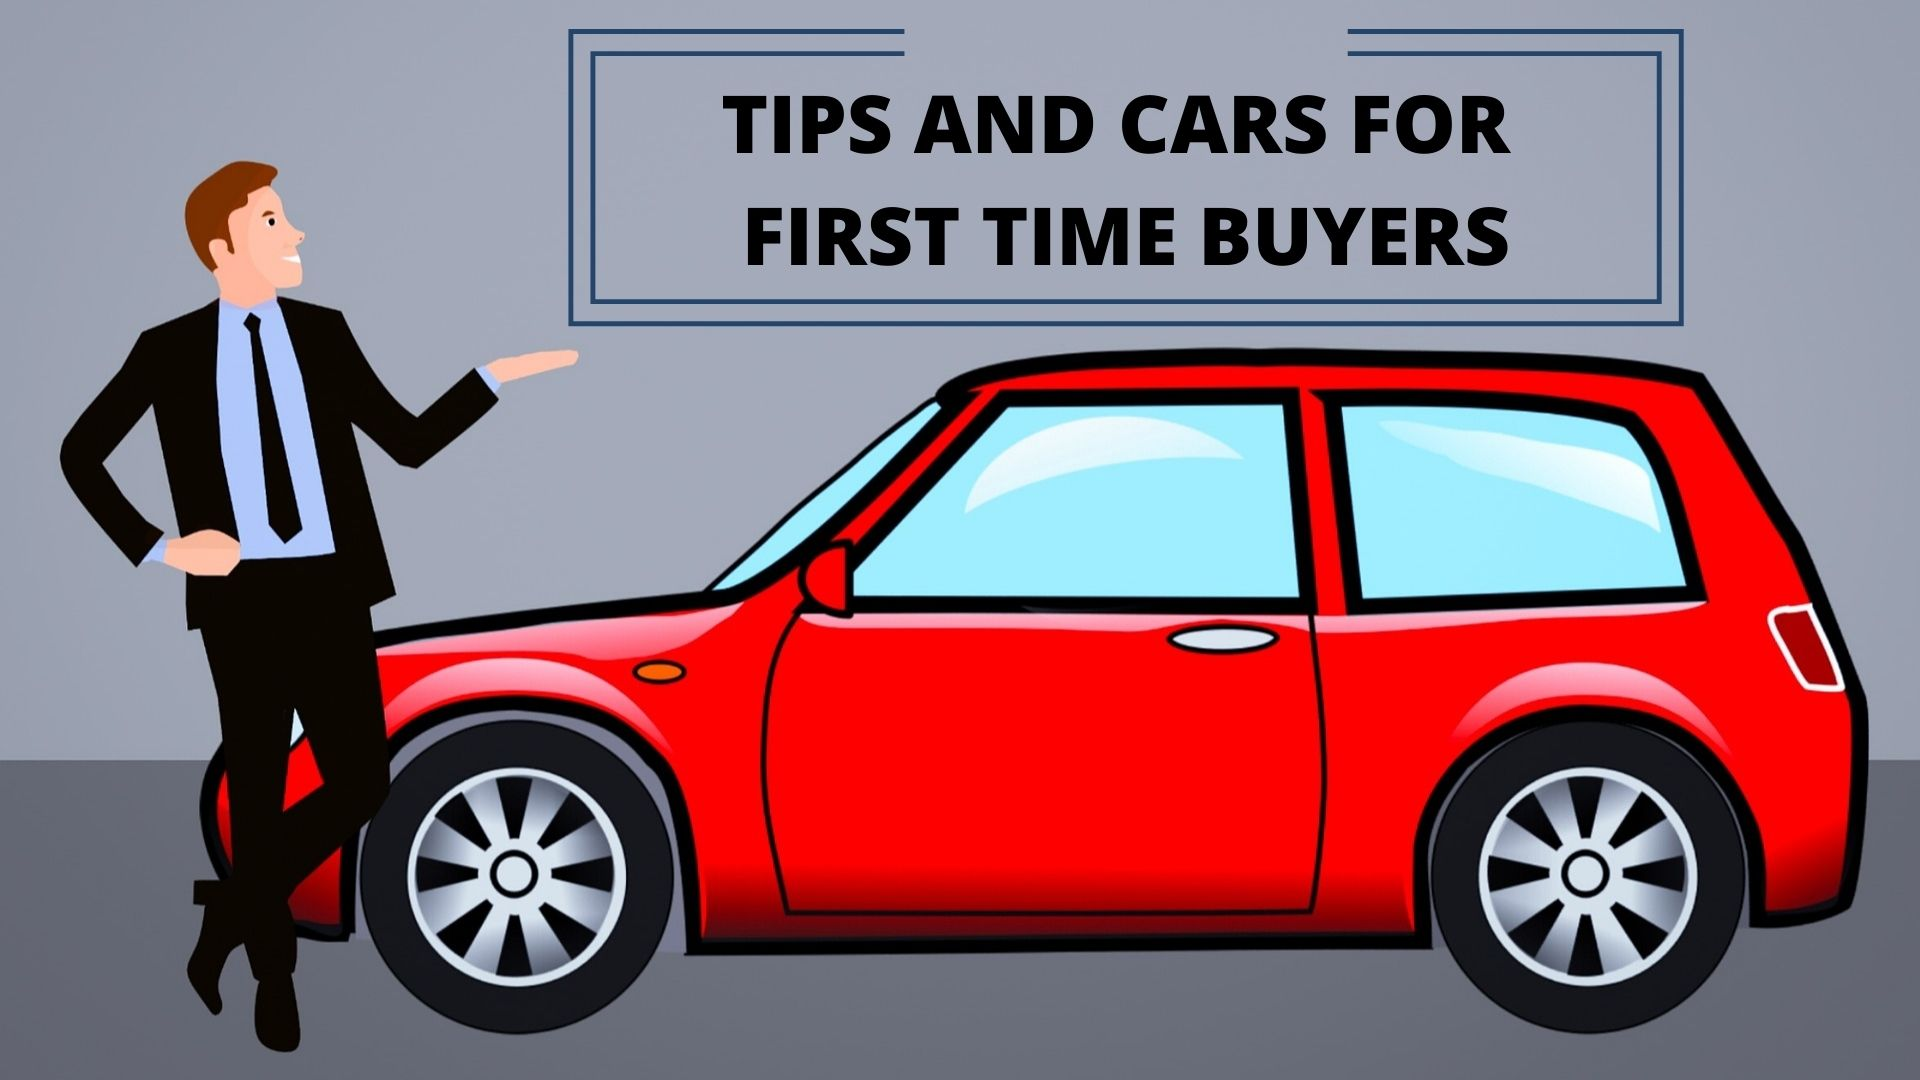 TIPS AND CARS FOR FIRST TIME BUYERS